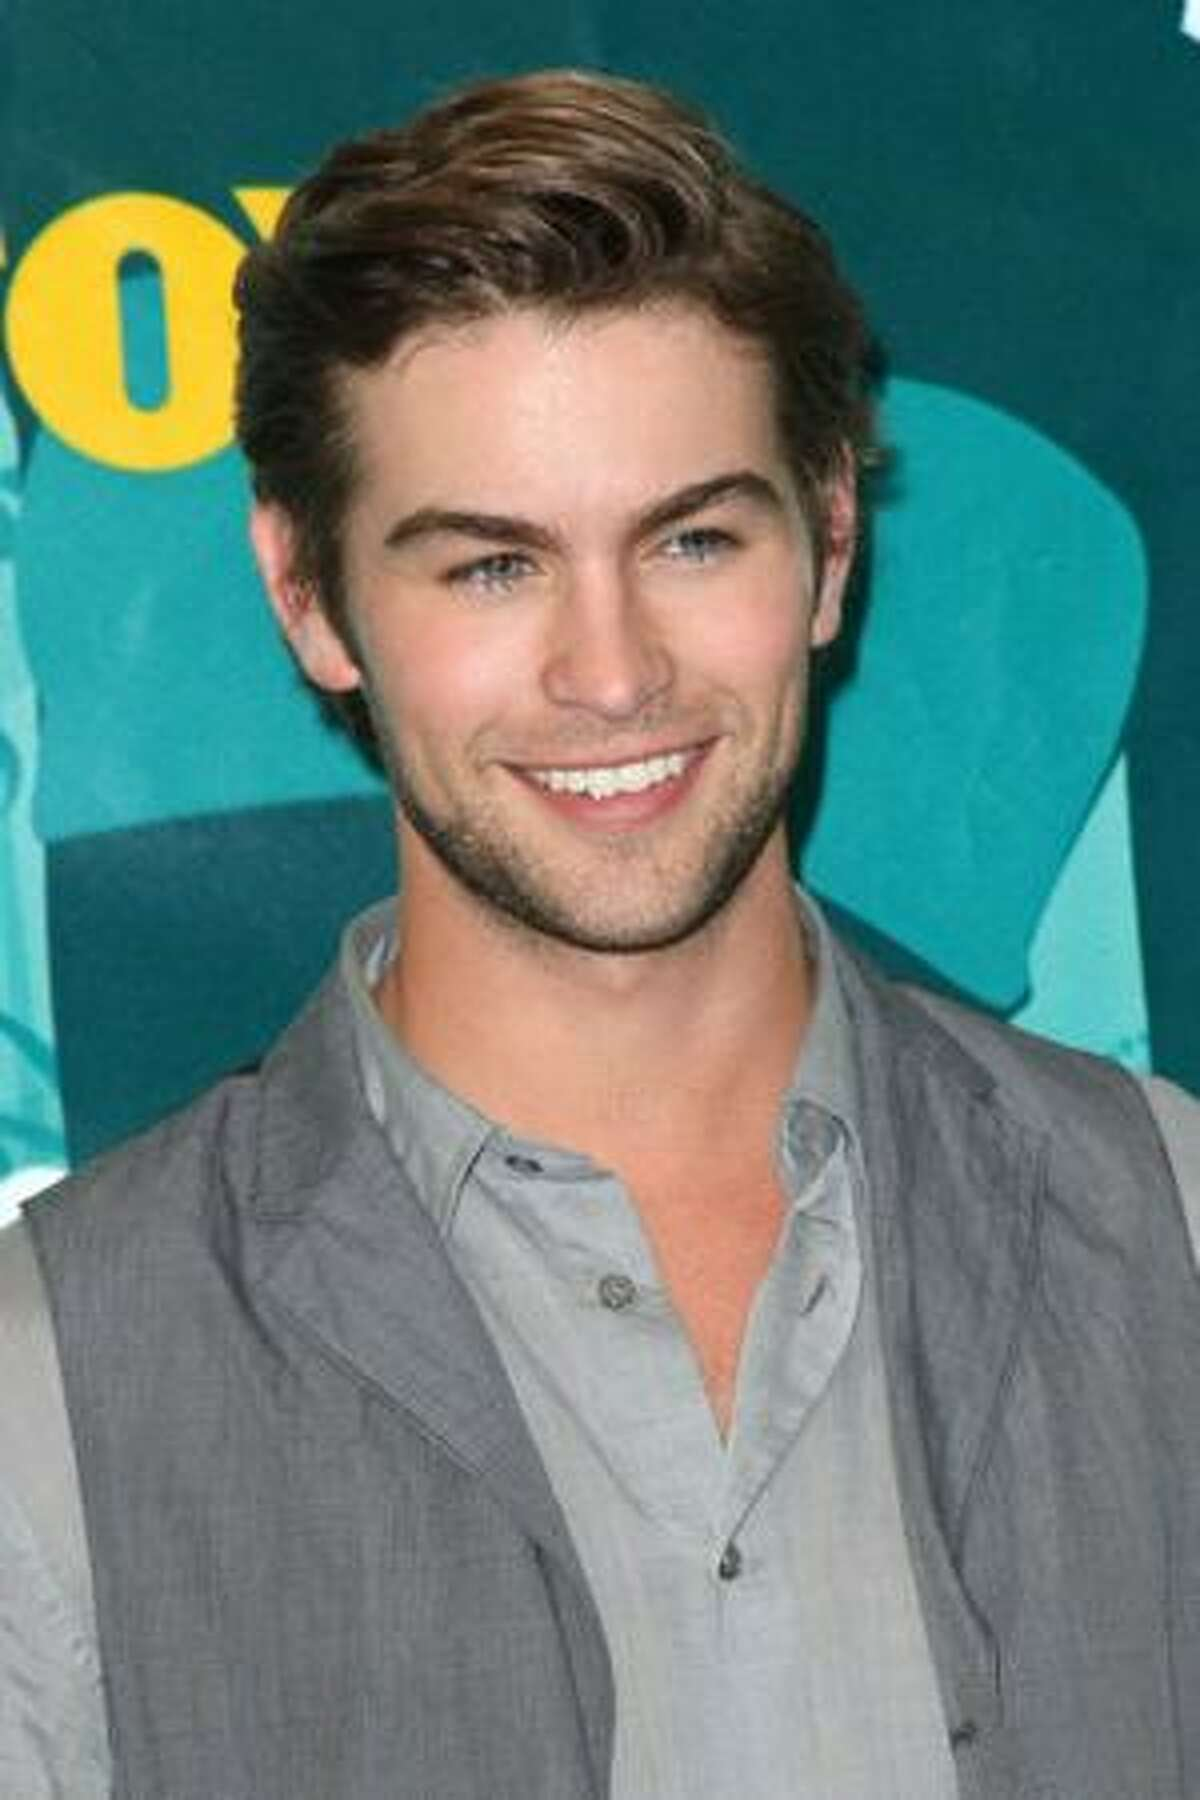 Actor Chace Crawford poses with Choice TV Actor award in press room during the 2009 Teen Choice Awards held at Gibson Amphitheatre on Sunday in Universal City, California.